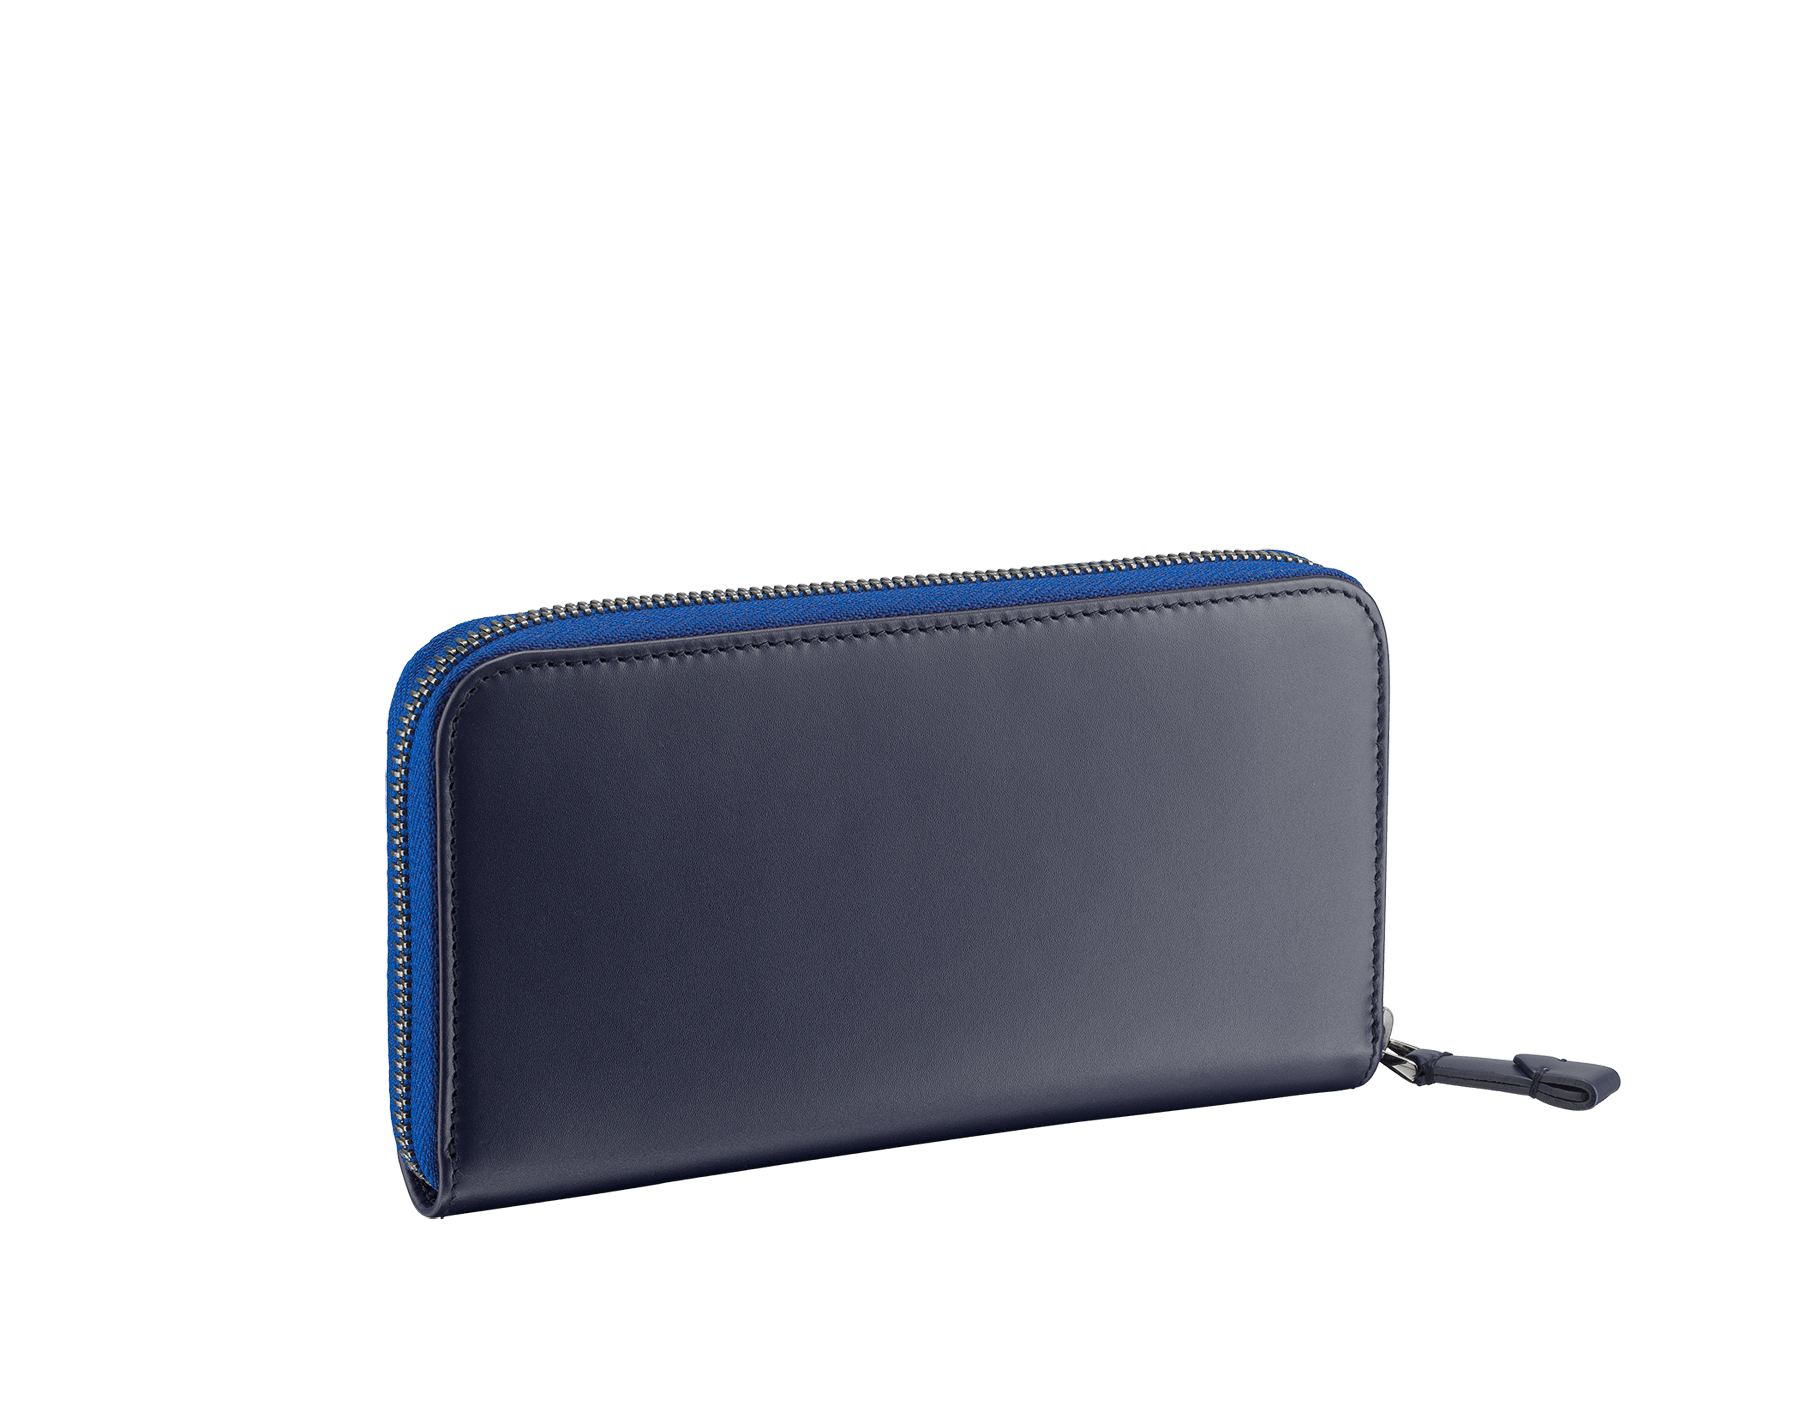 Serpenti Scaglie men's zipped wallet in cobalt tourmaline grazed calf leather and dark denim calf leather. Bvlgari logo engraved on the hexagonal scaglie metal plate finished in dark ruthenium. 288604 image 3